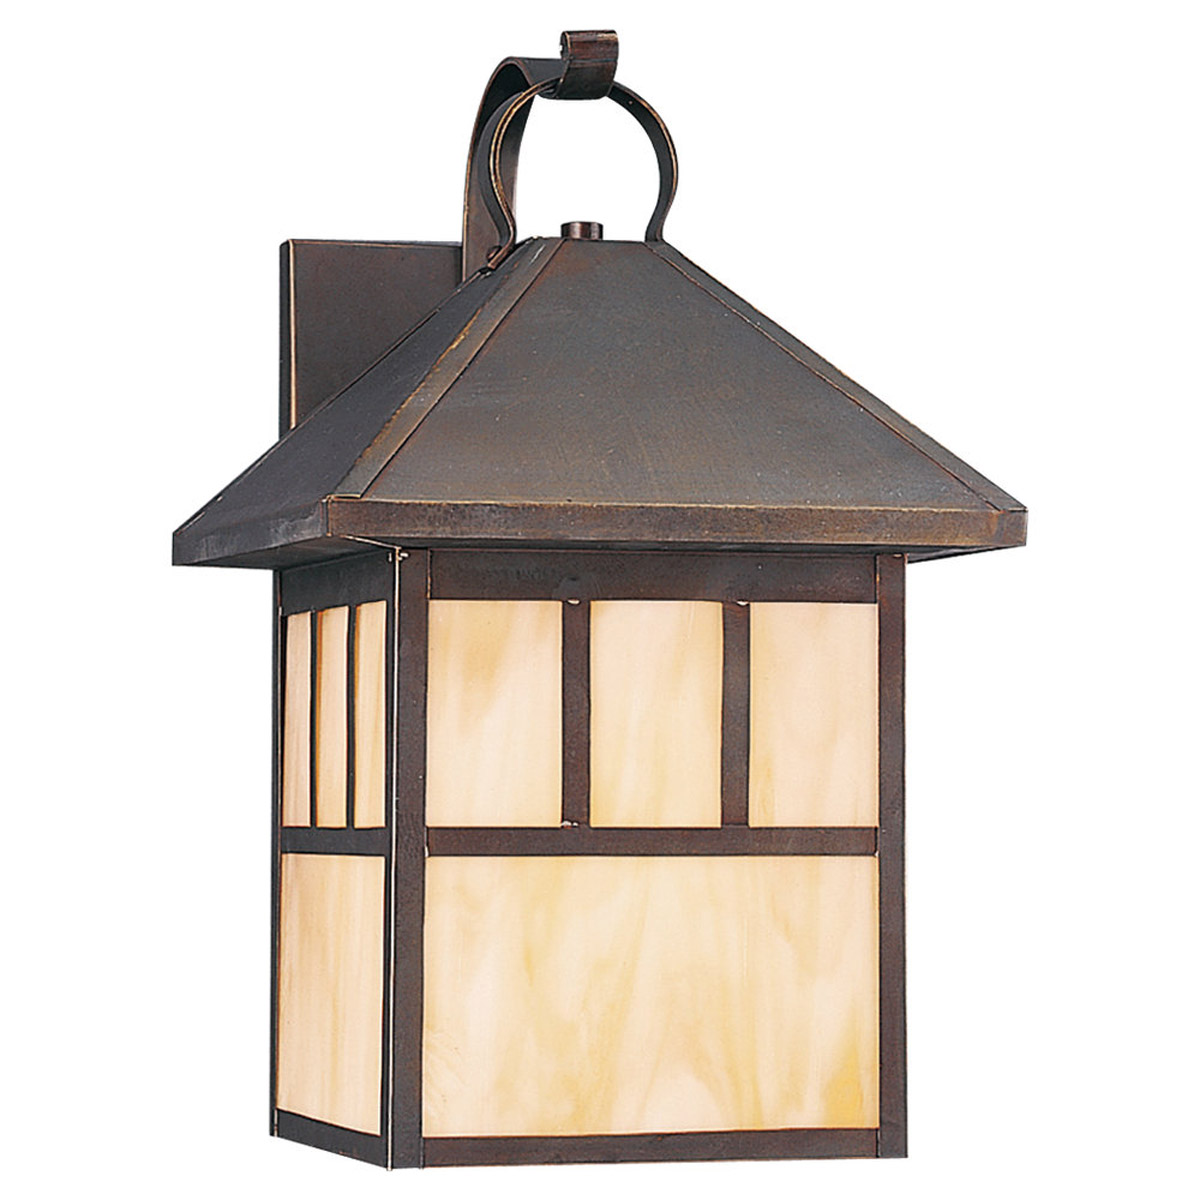 Sea Gull Lighting Prairie Statement 1 Light Outdoor Wall Lantern in Antique Bronze 89417PBLE-71 photo